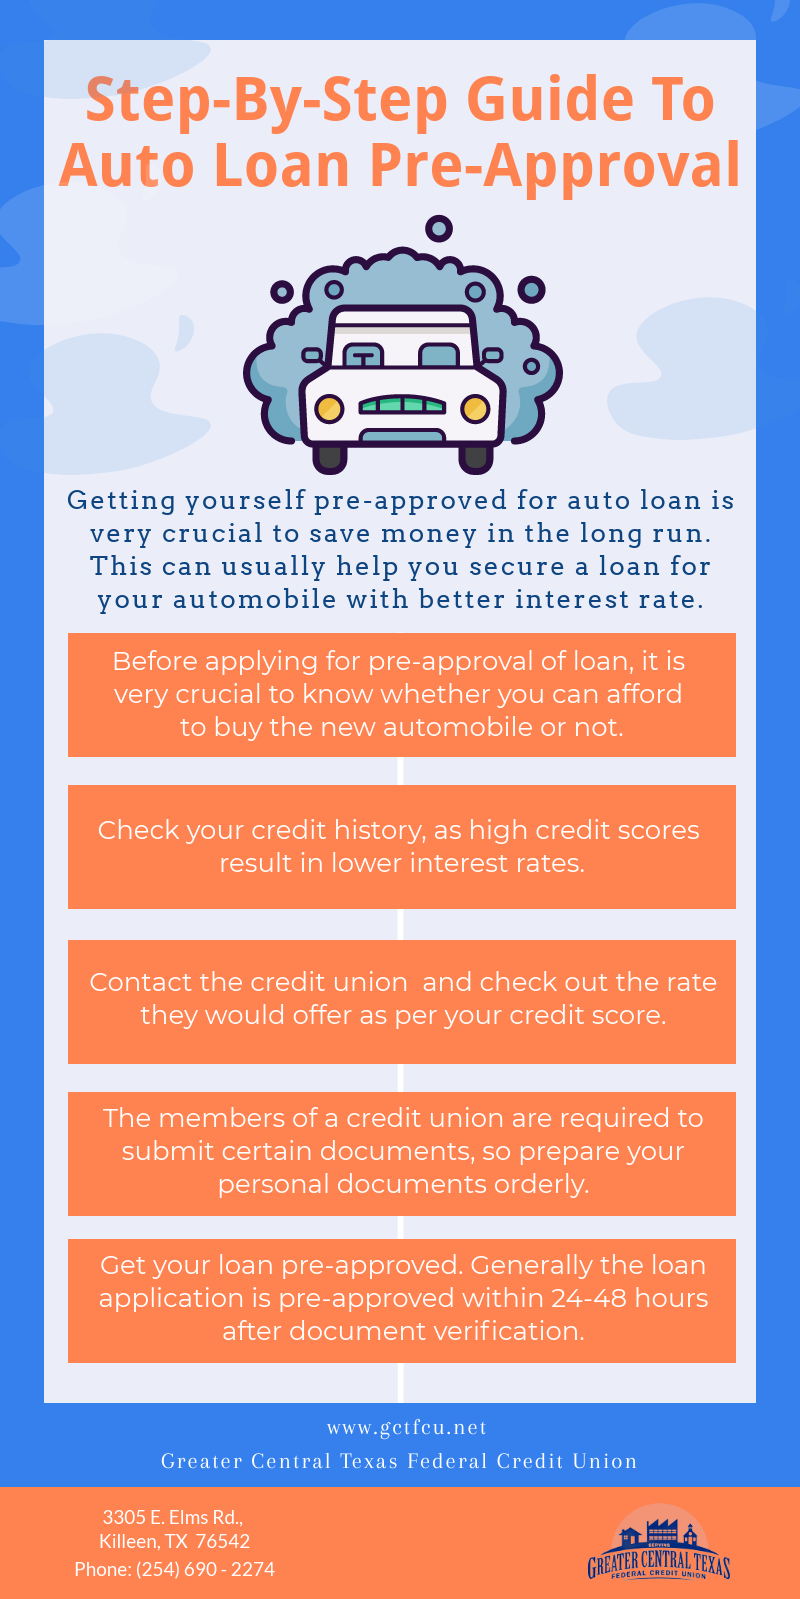 Pin By Greater Central Texas Federal On Credit Union Killeen Tx Car Loans Step Guide Loan